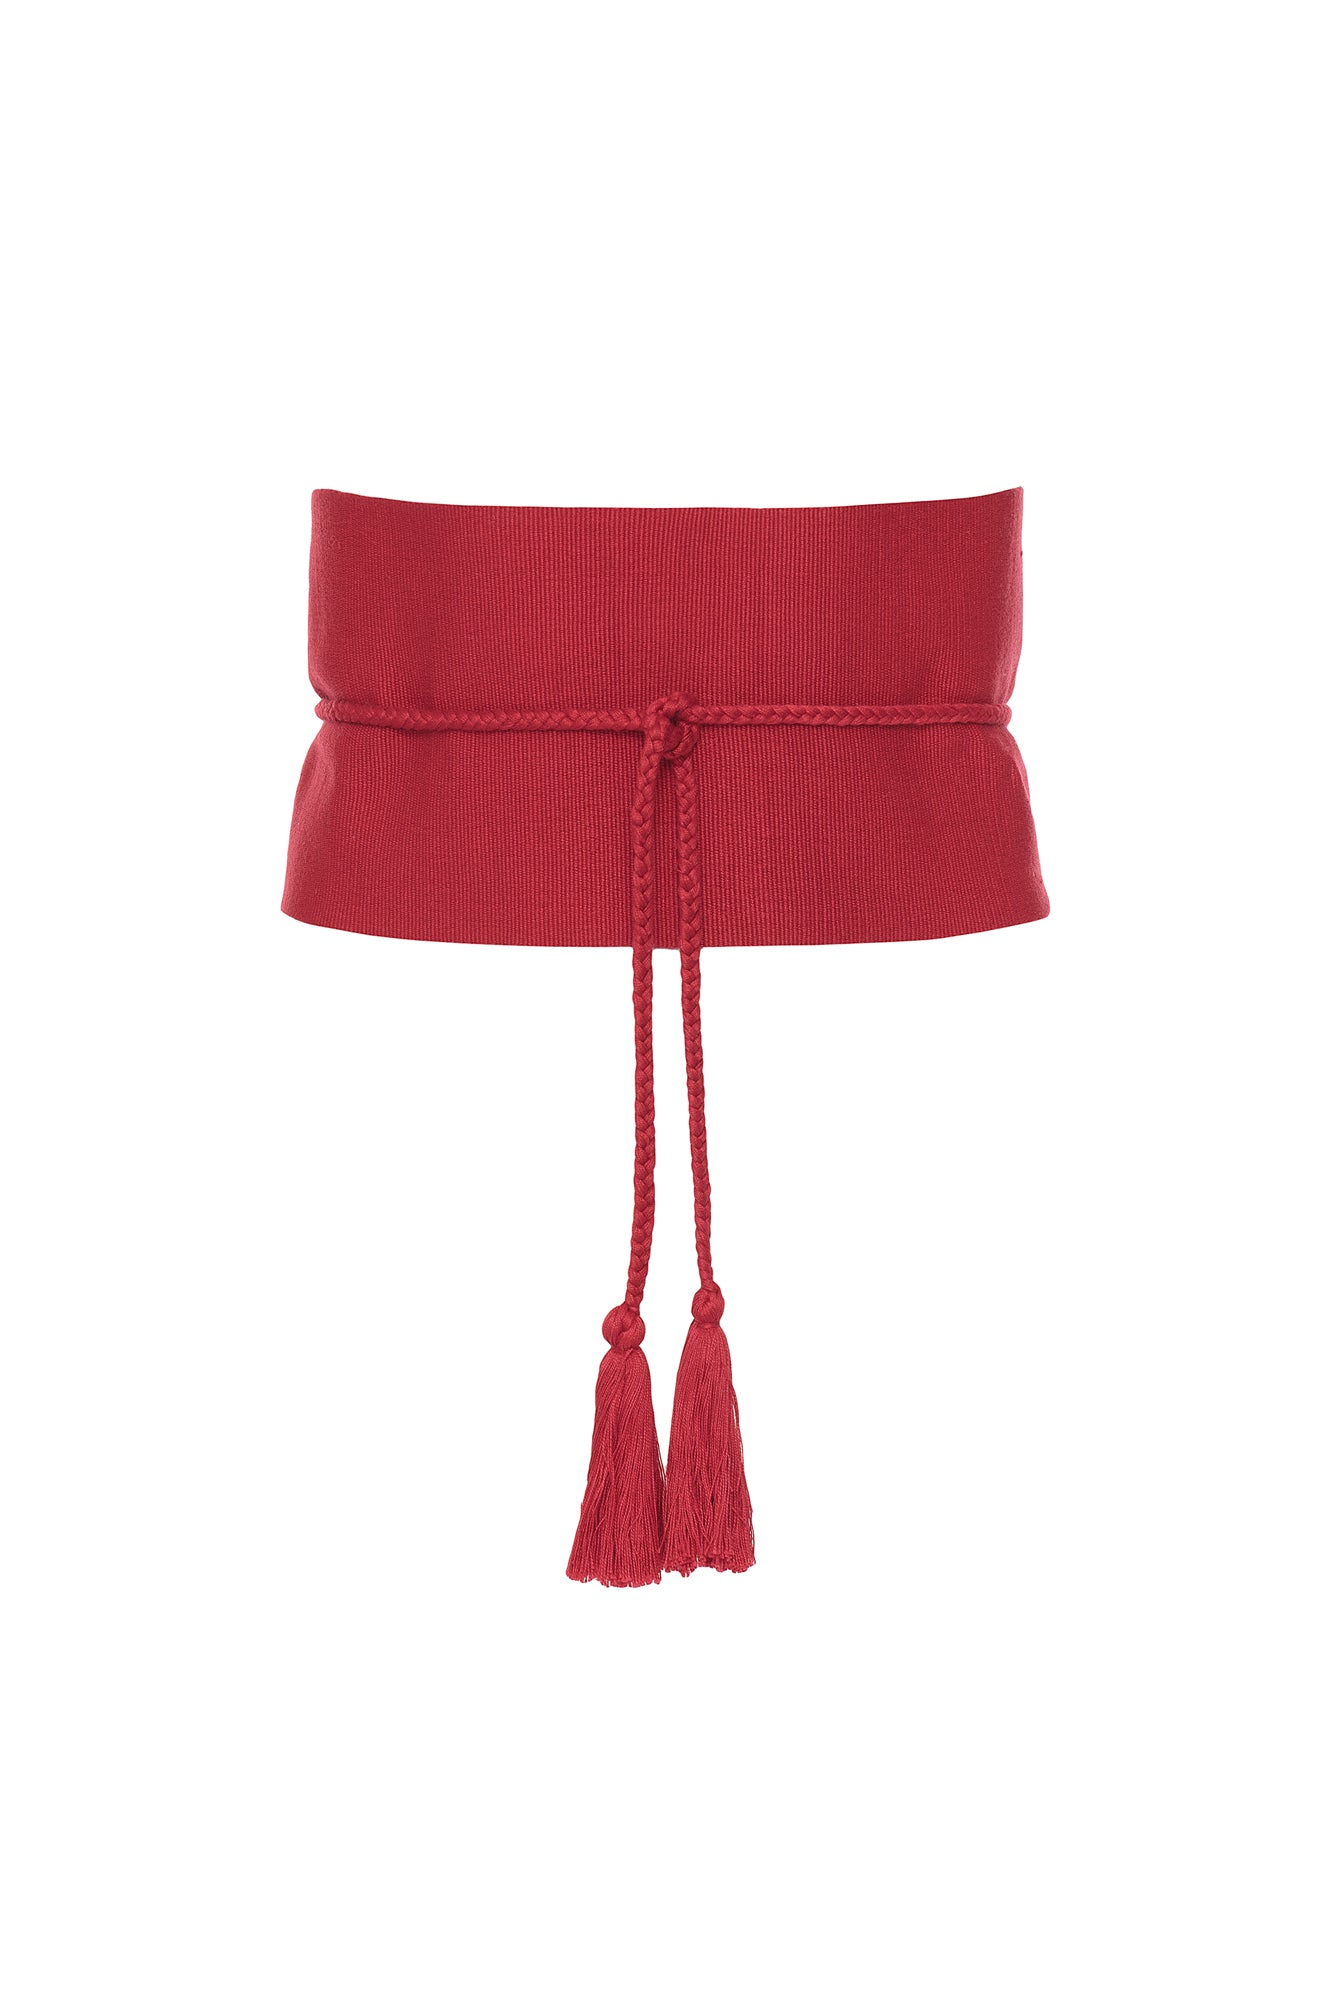 Carolina K Carmen Belt Red One Size